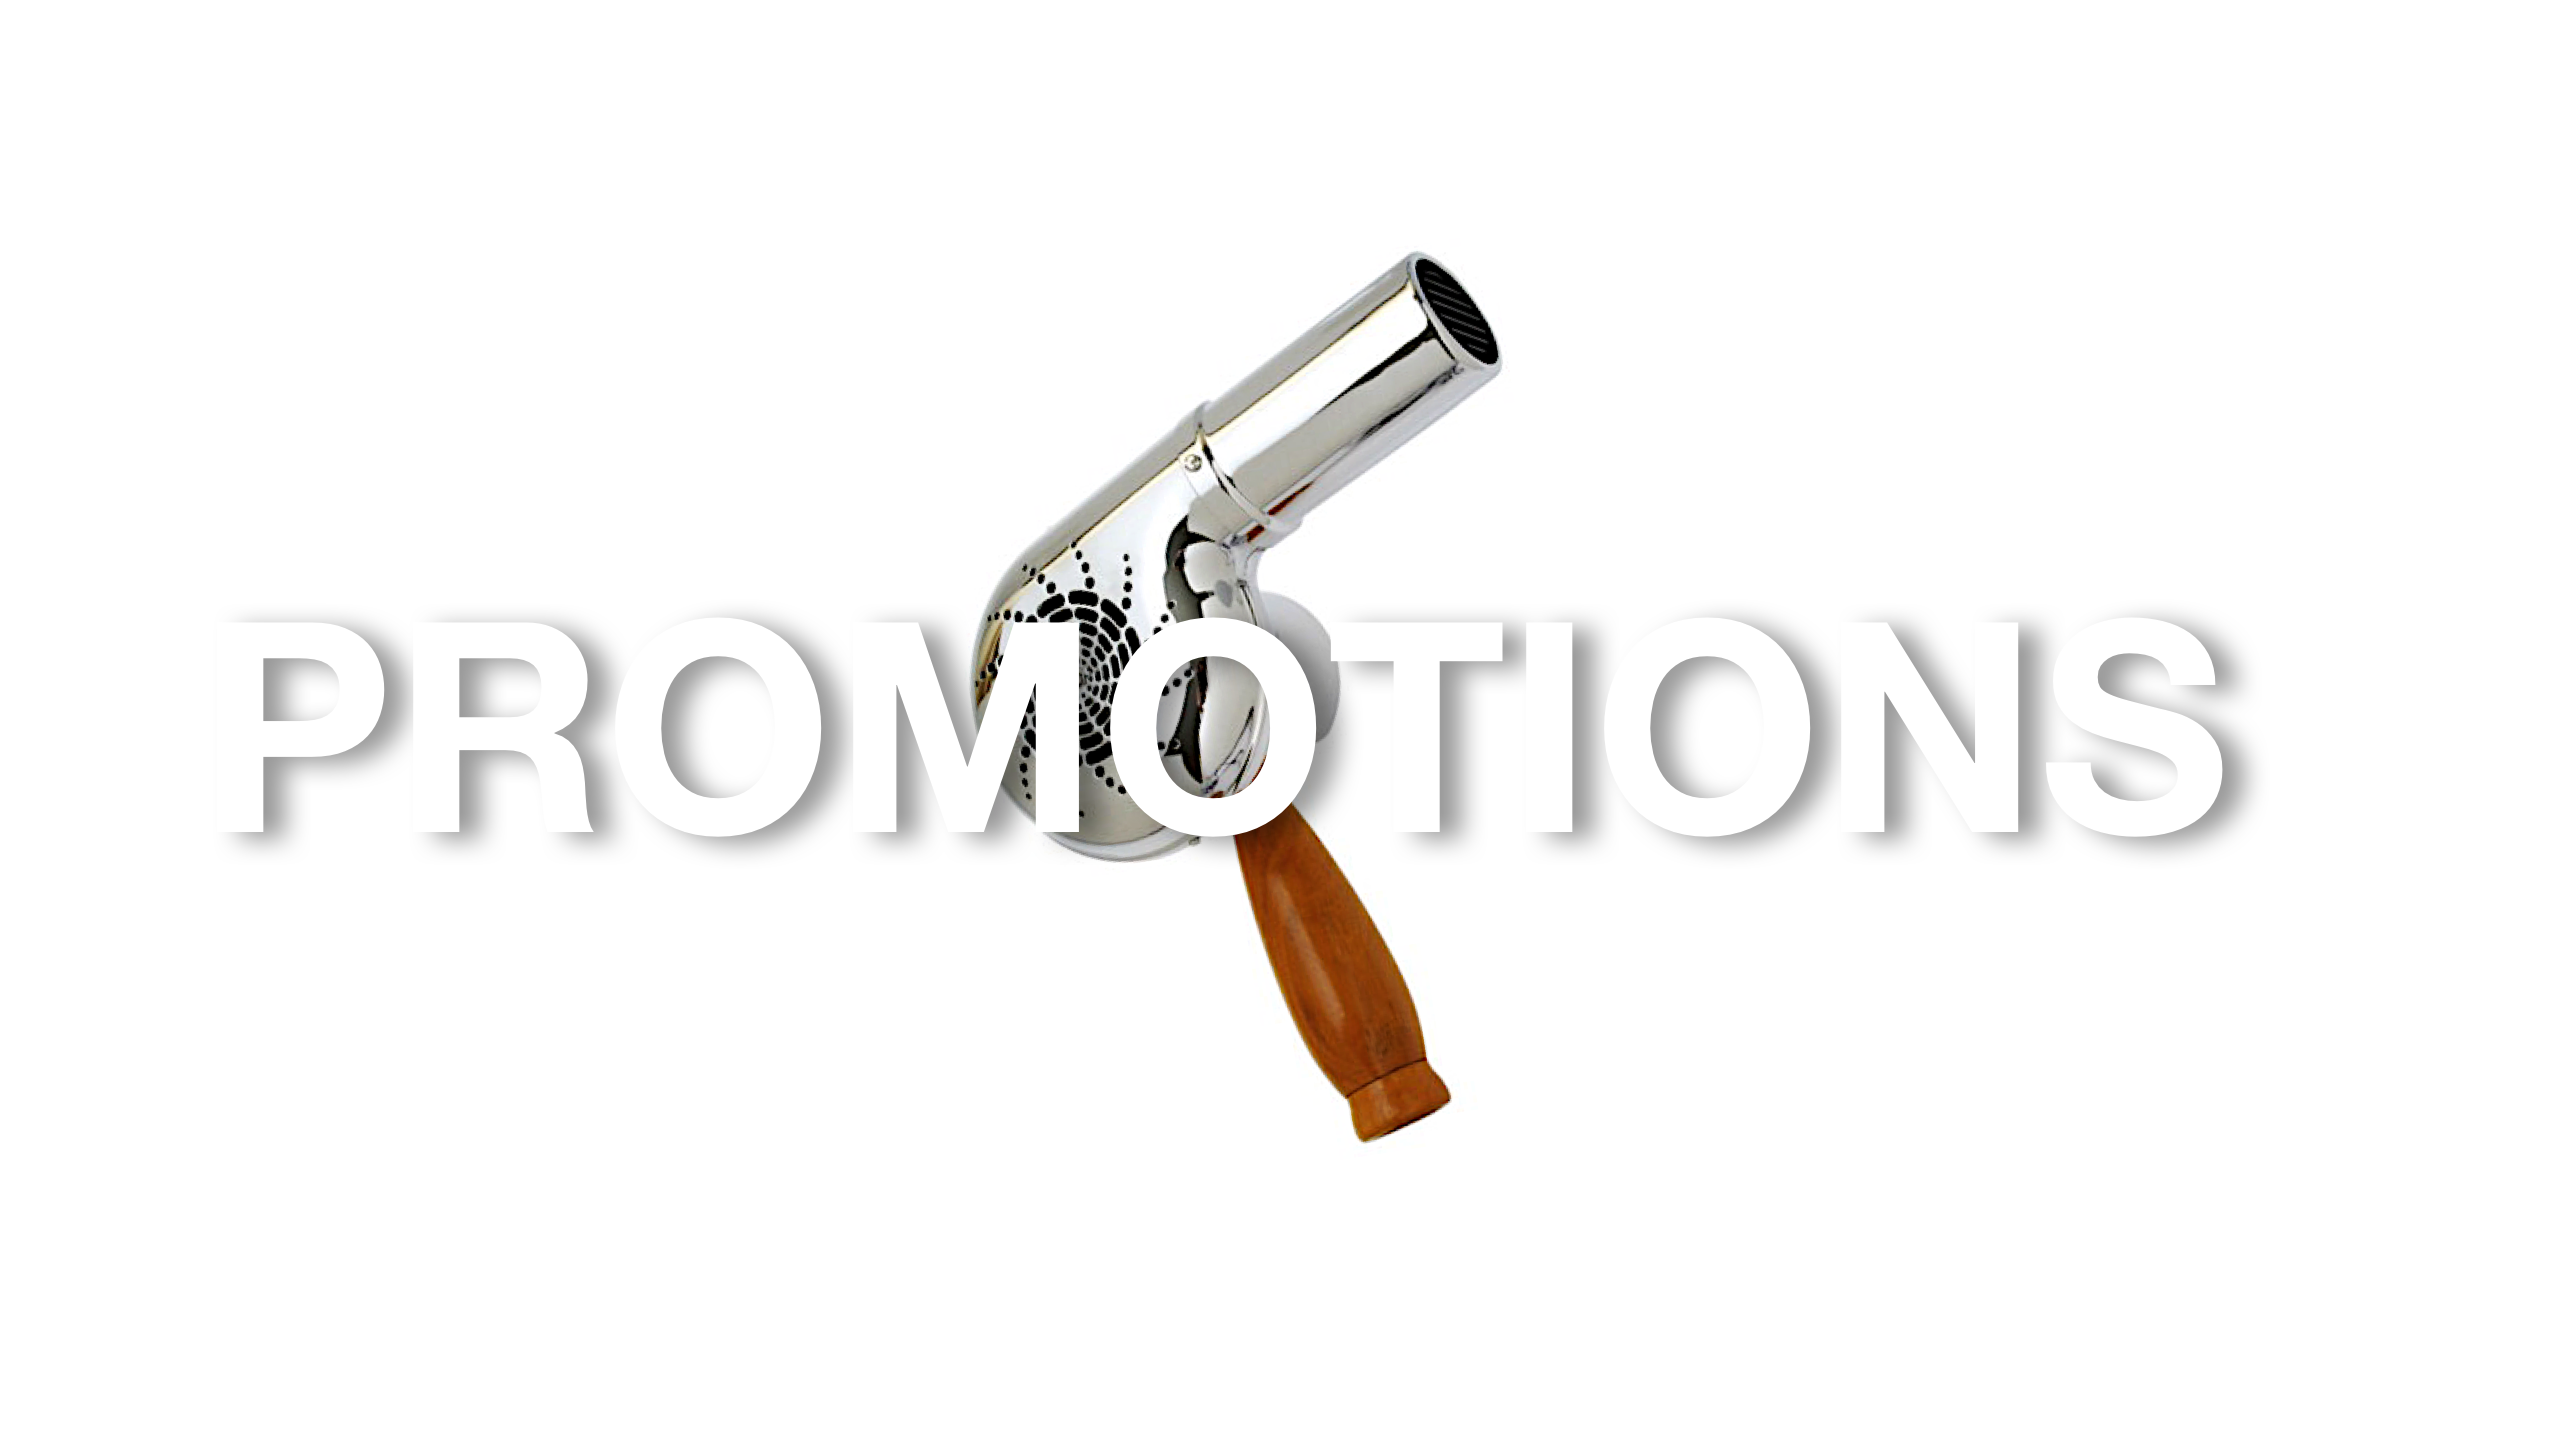 one blow dry bar promotions for our popular blow dry hair salon brand blowout locations